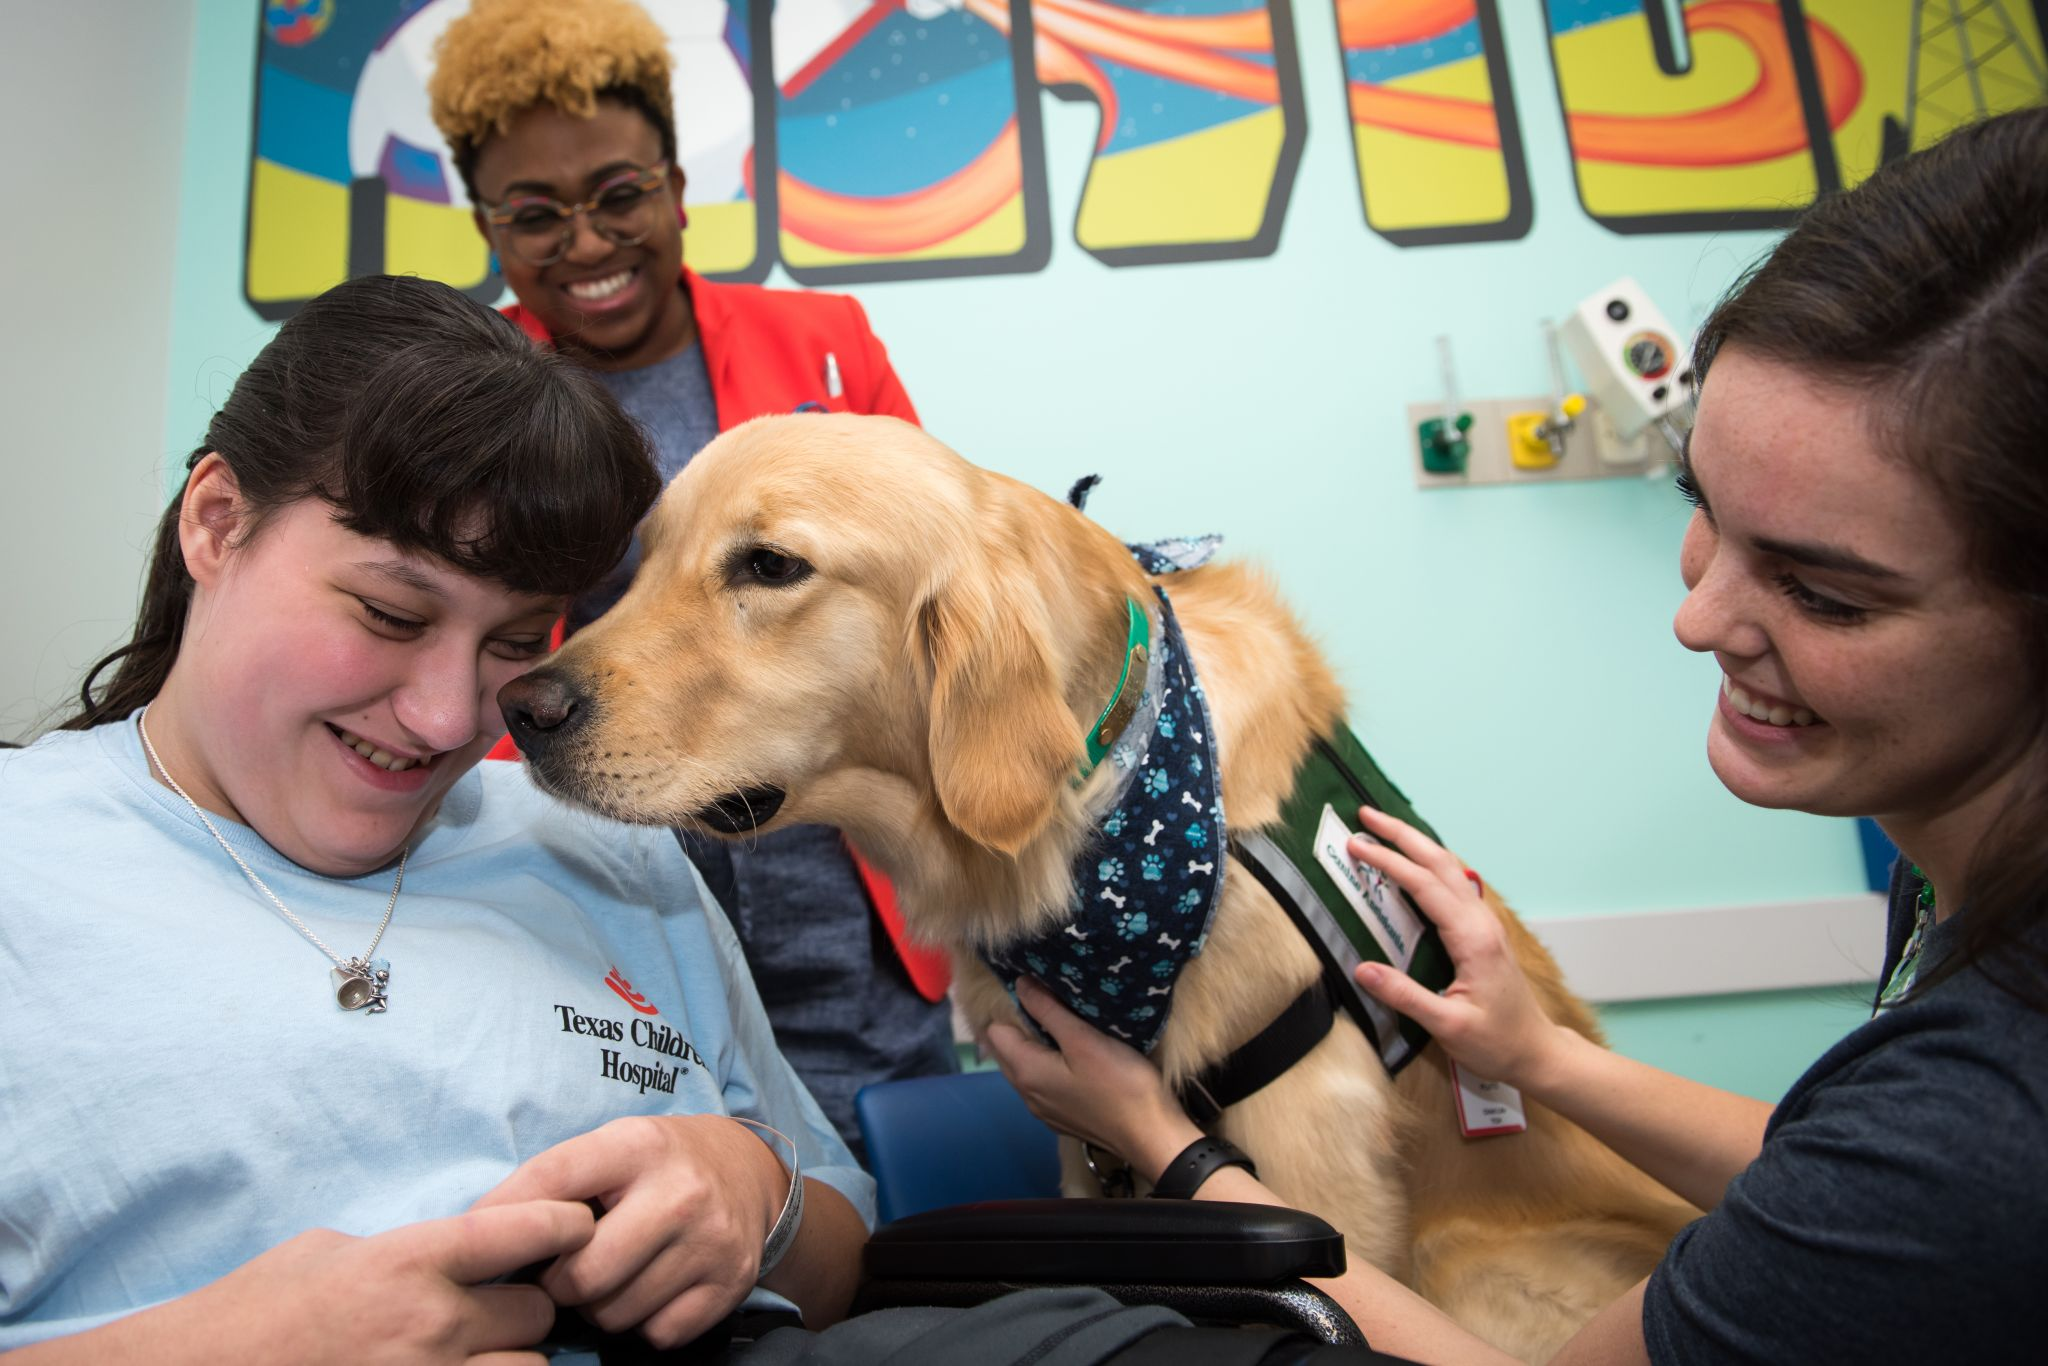 Texas Children's Hospital welcomes new therapy dog, Pluto